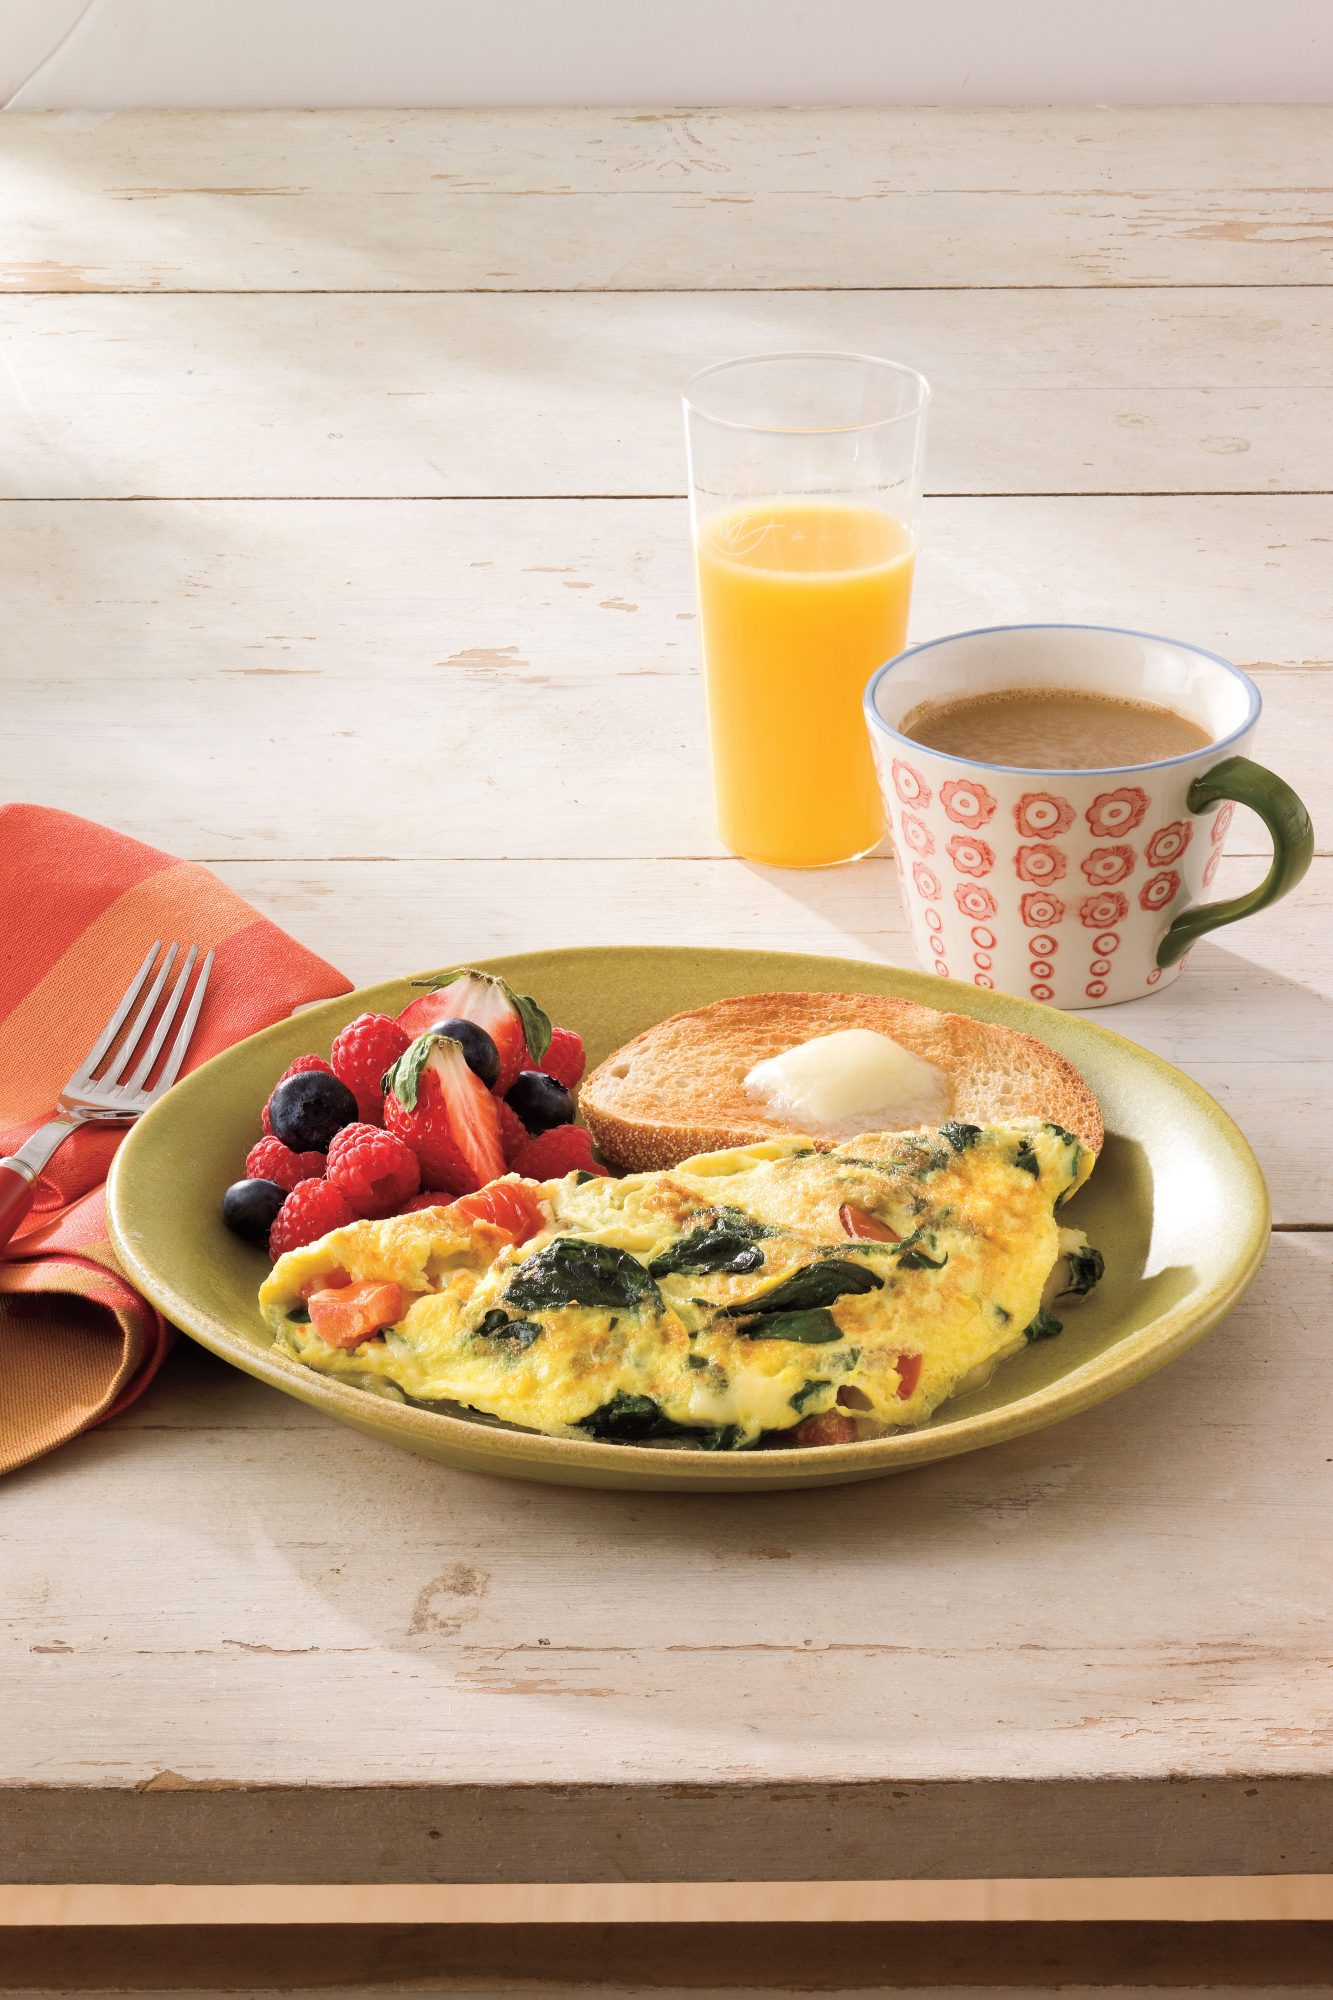 The Secret To Making The Perfect Omelet? Think Beyond the Ingredients